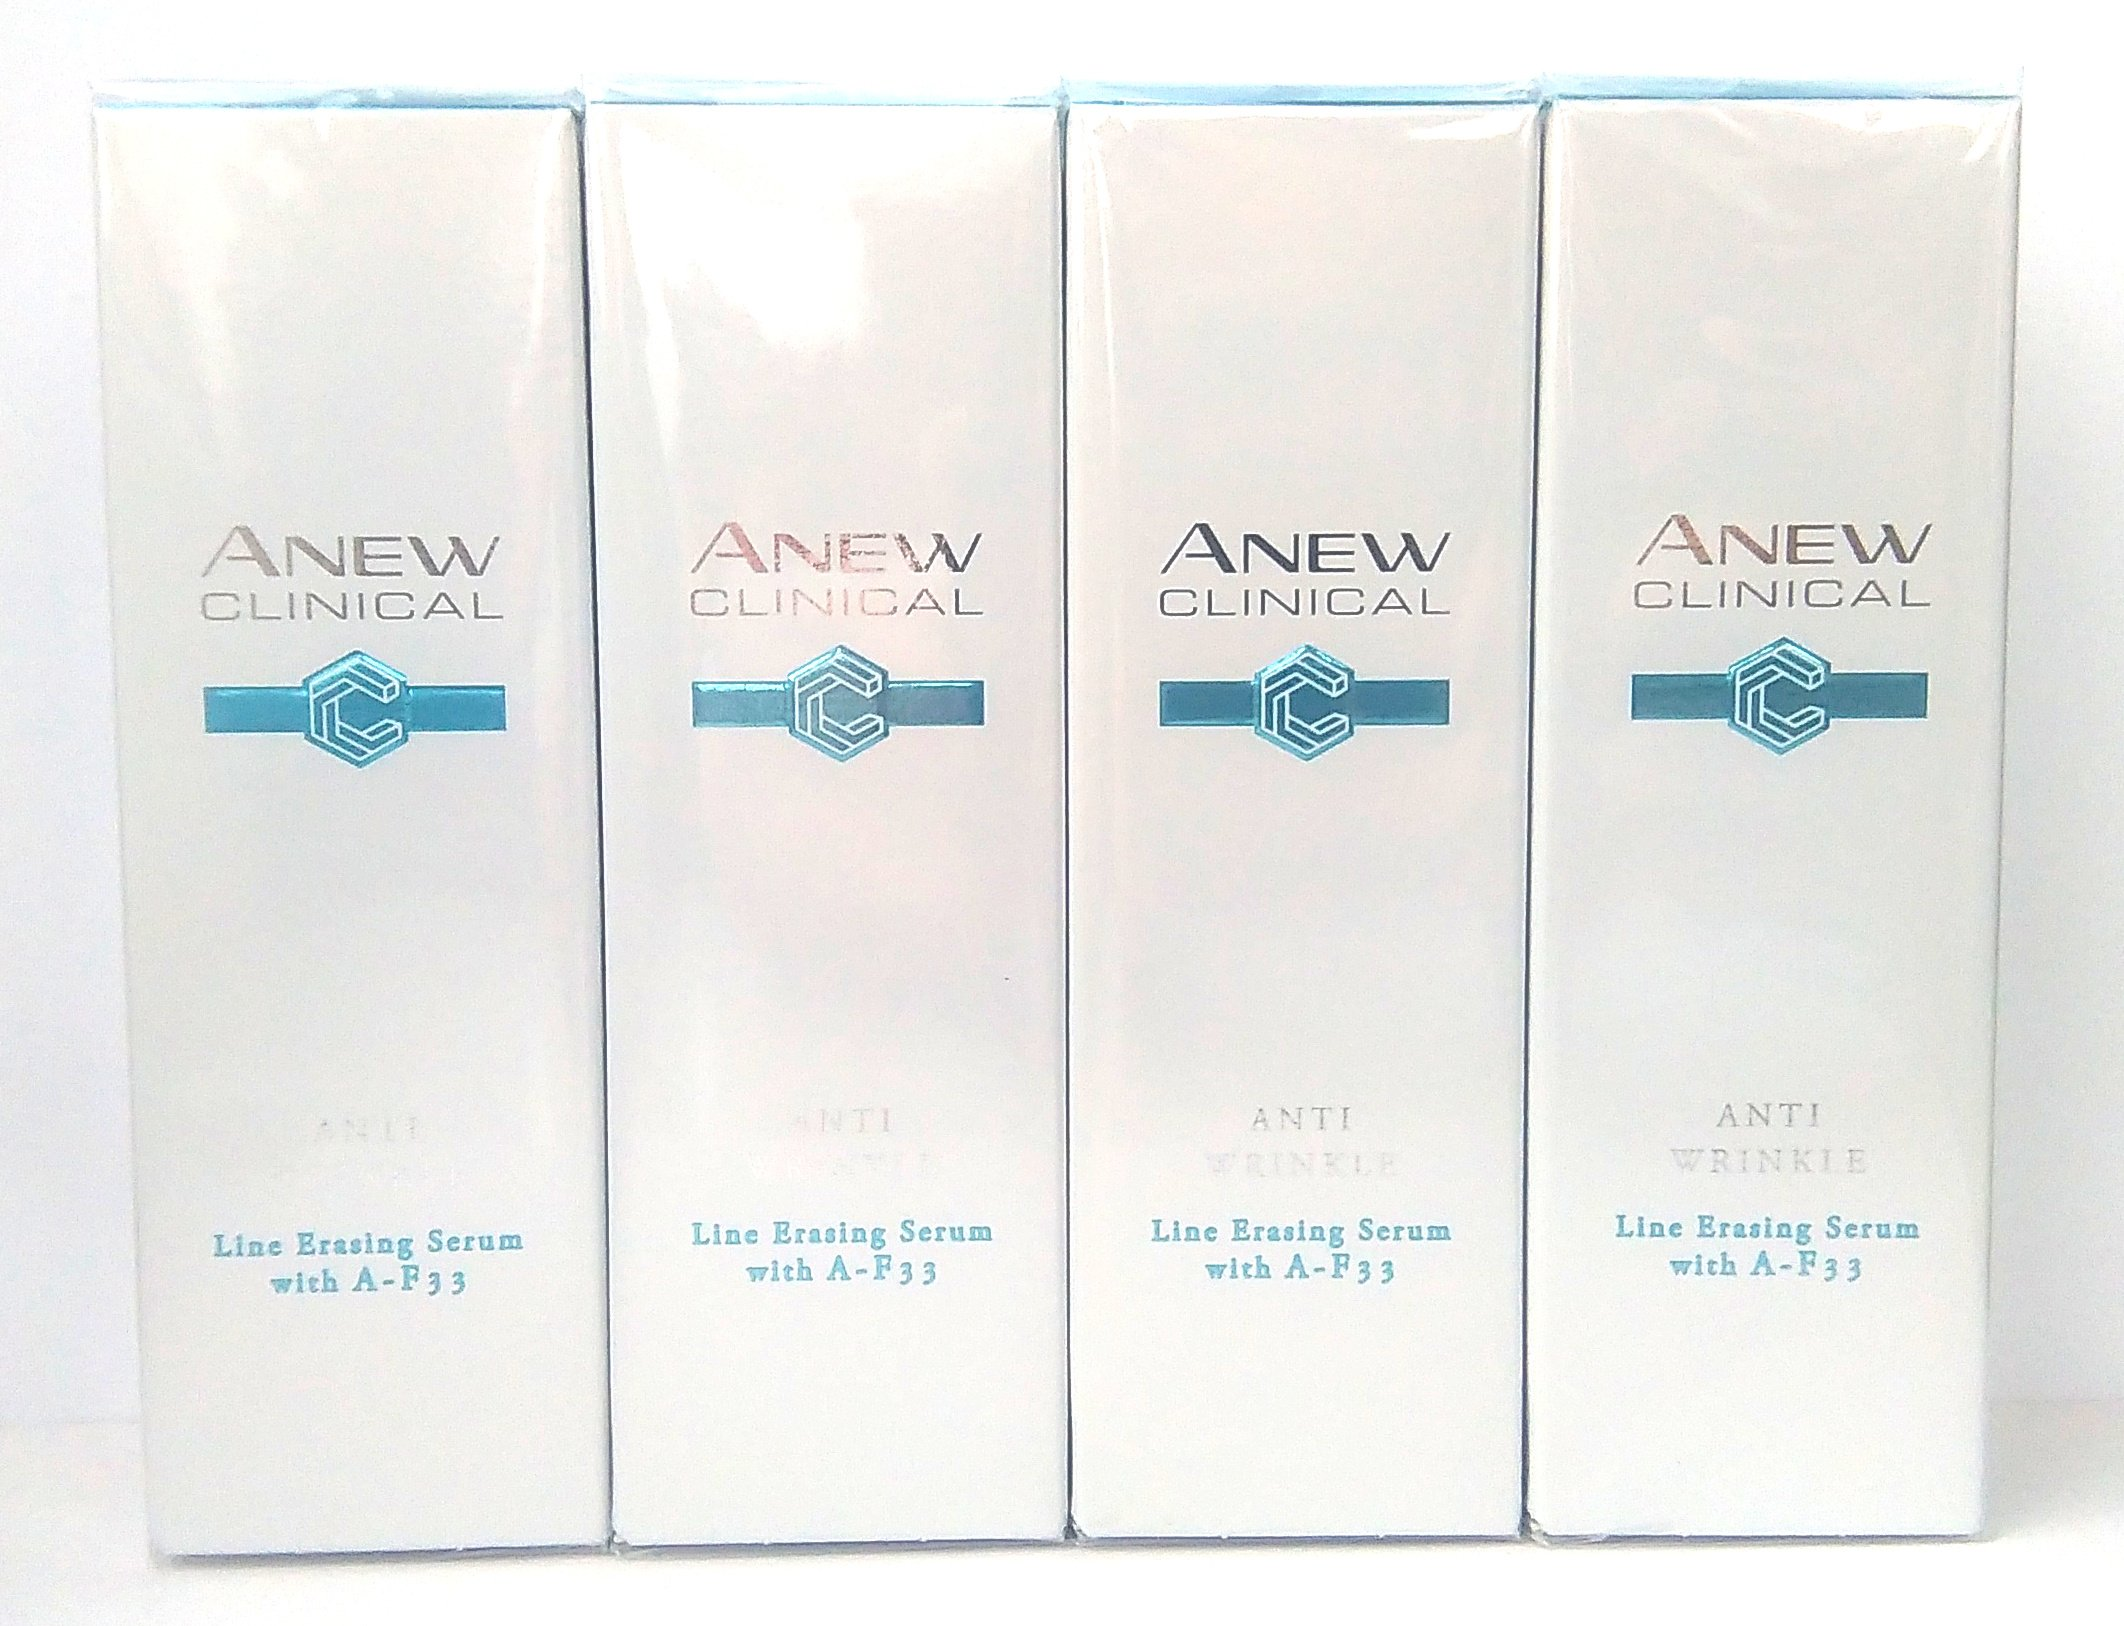 4 x AVON Anew Clinical Anti Wrinkle Sérum Difuminador De Lineas Con A-F33 30ml – 1.0oz Set